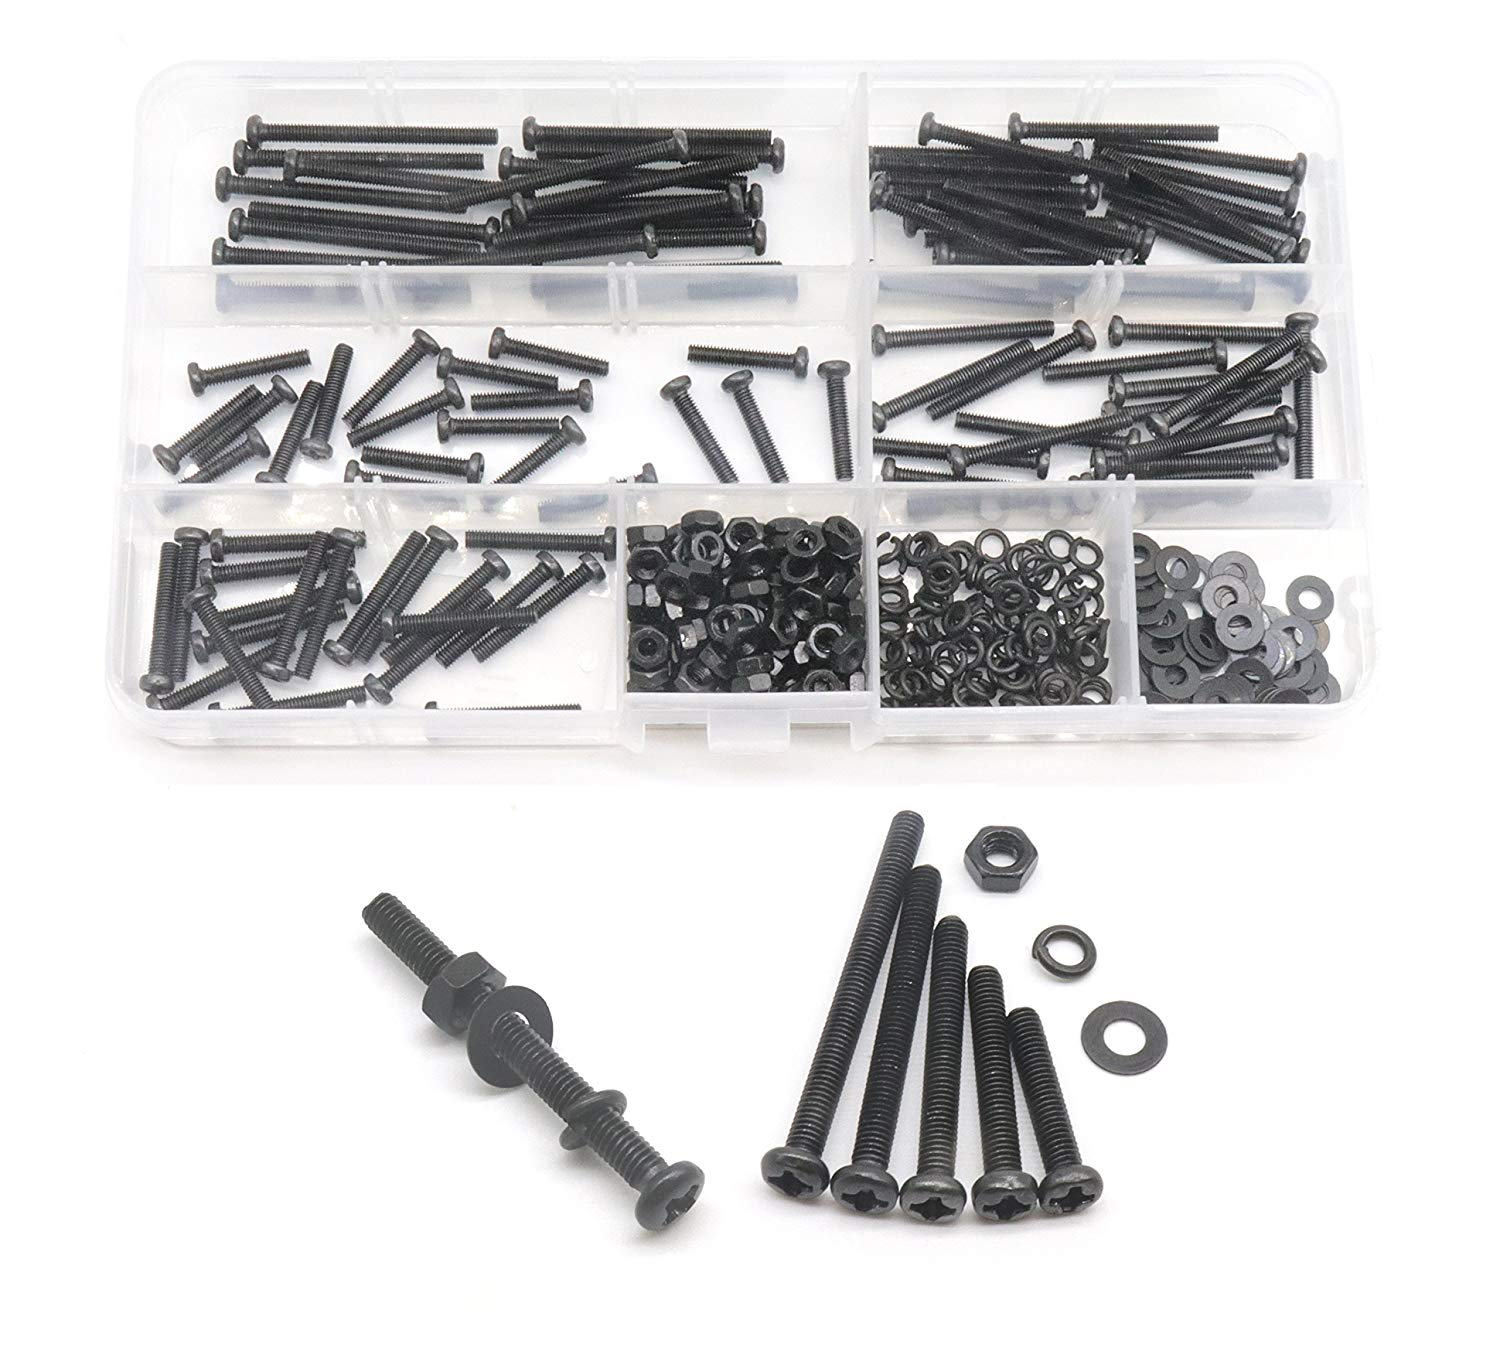 cSeao 400pcs M3 Pan Head Phillips Screws Nuts Washers Assortment Kit, Black Oxide Finish, M3x16mm/20mm/25mm/30mm/35mm